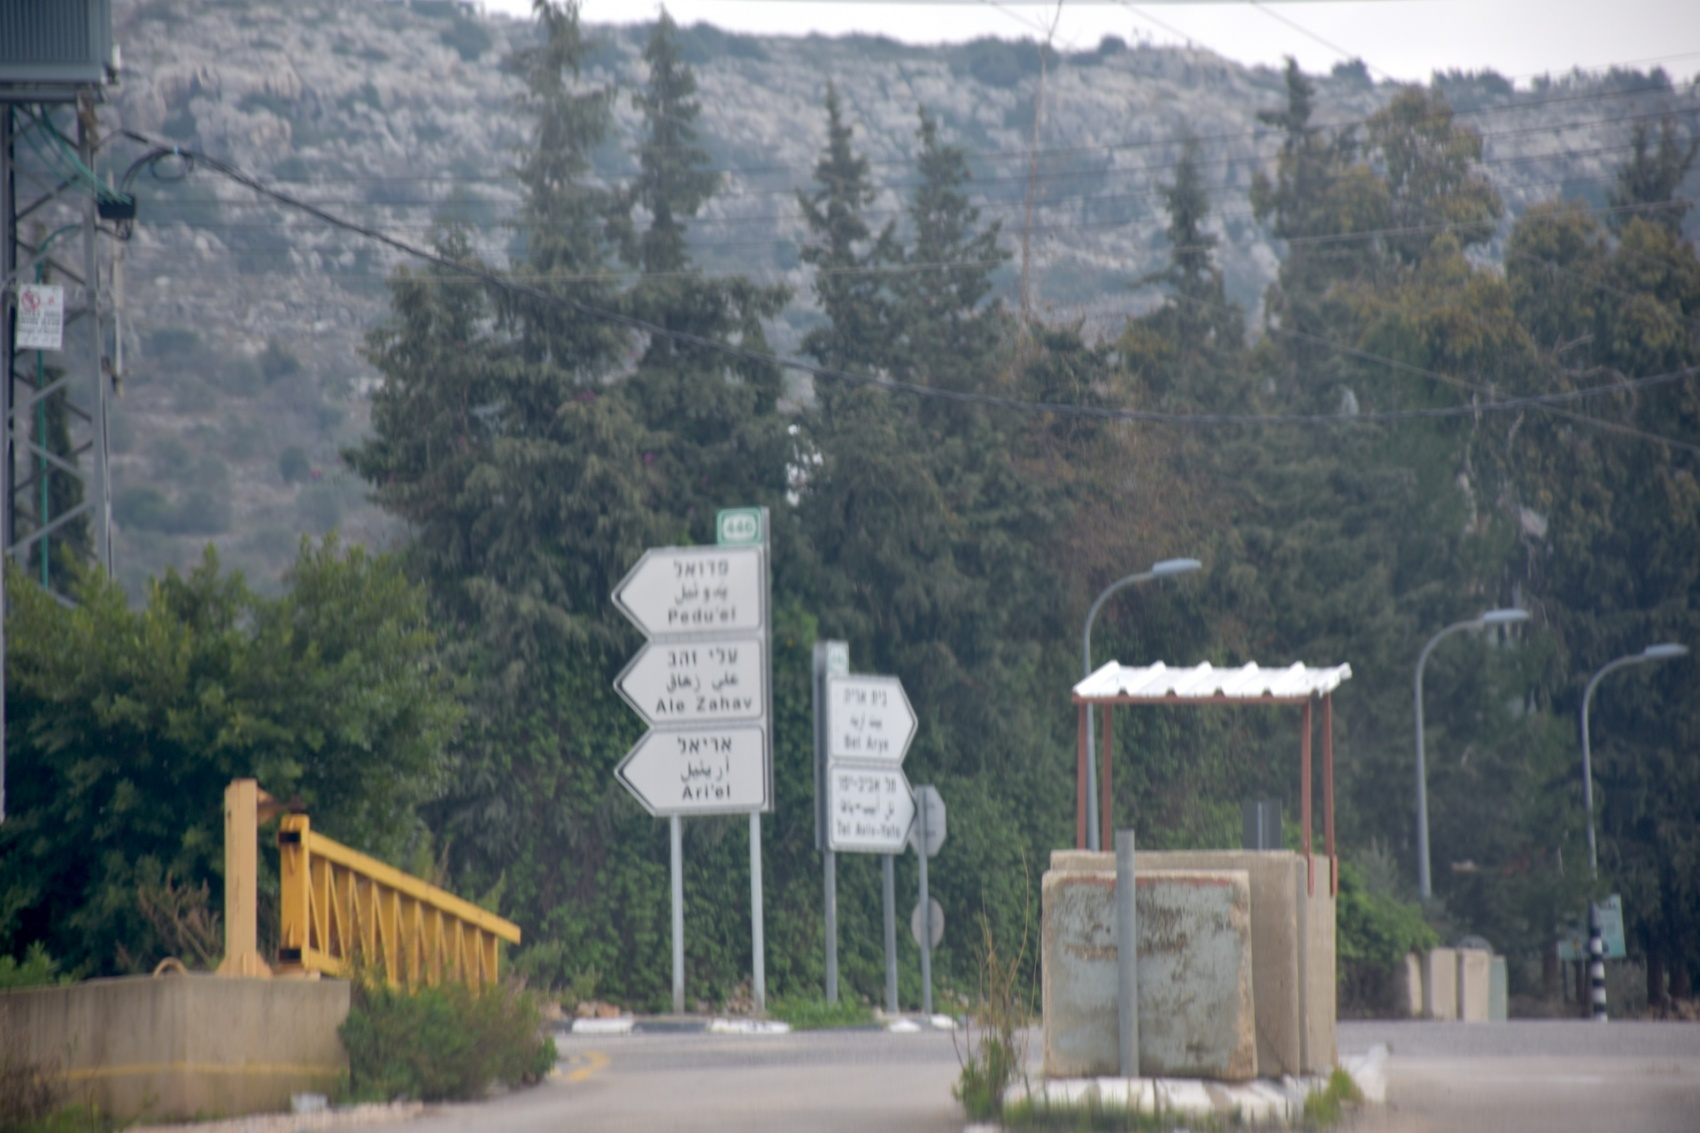 Der Ballout Israeli checkpoint and gate